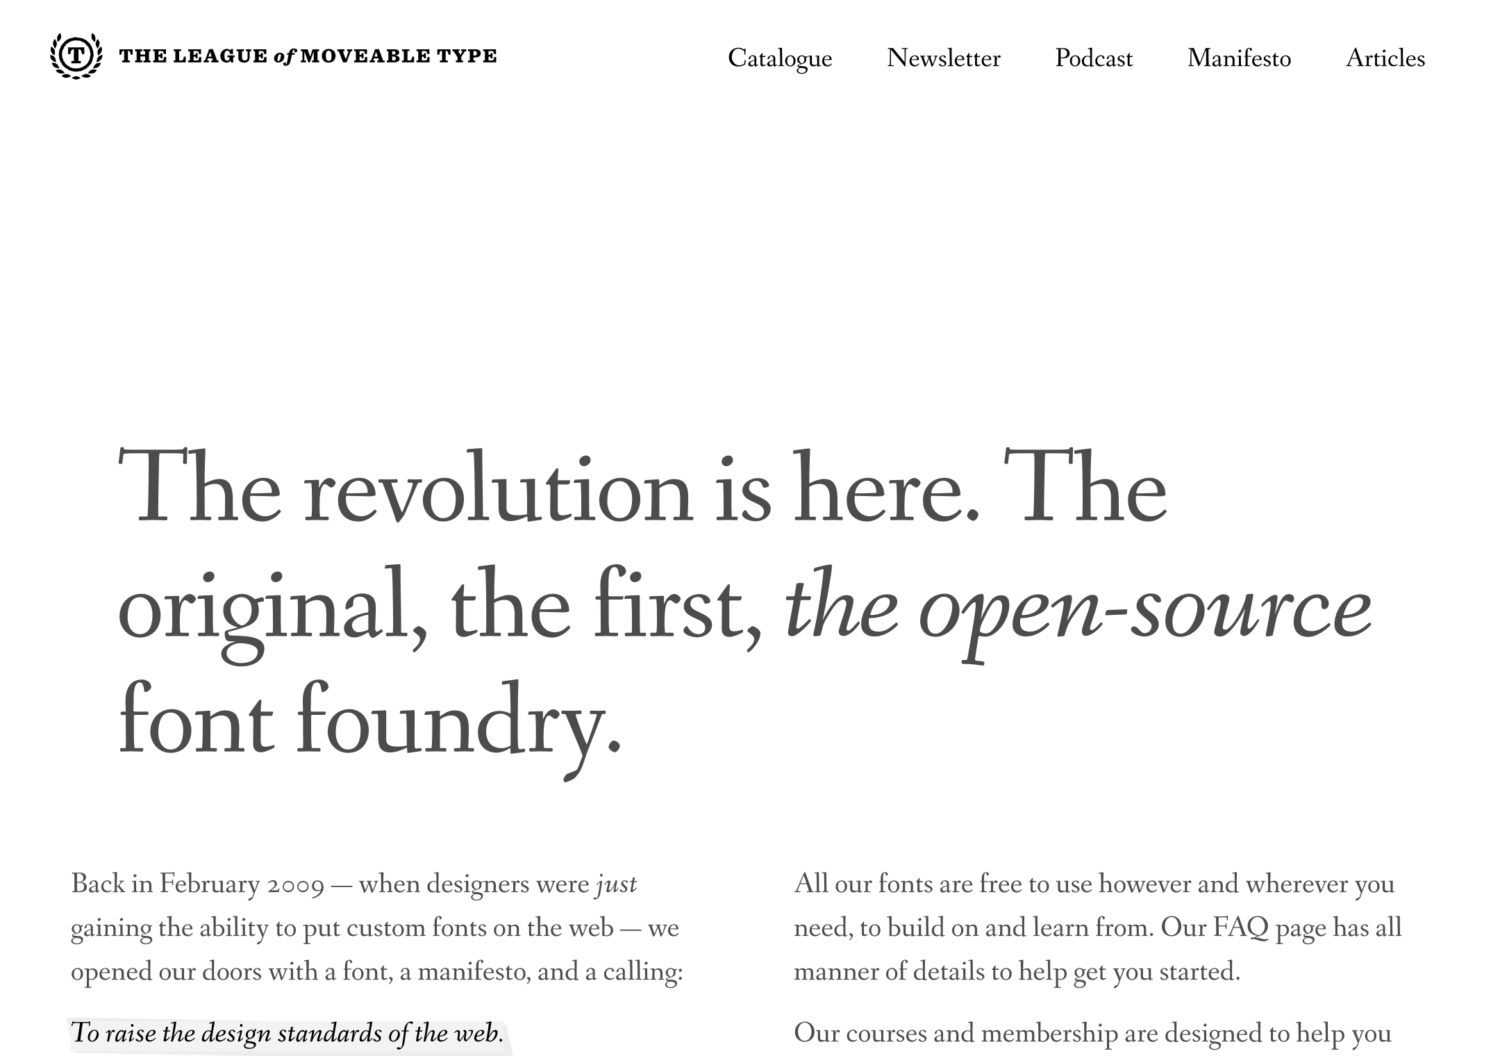 The revolution is here. The original, the first, the open-source font foundry.